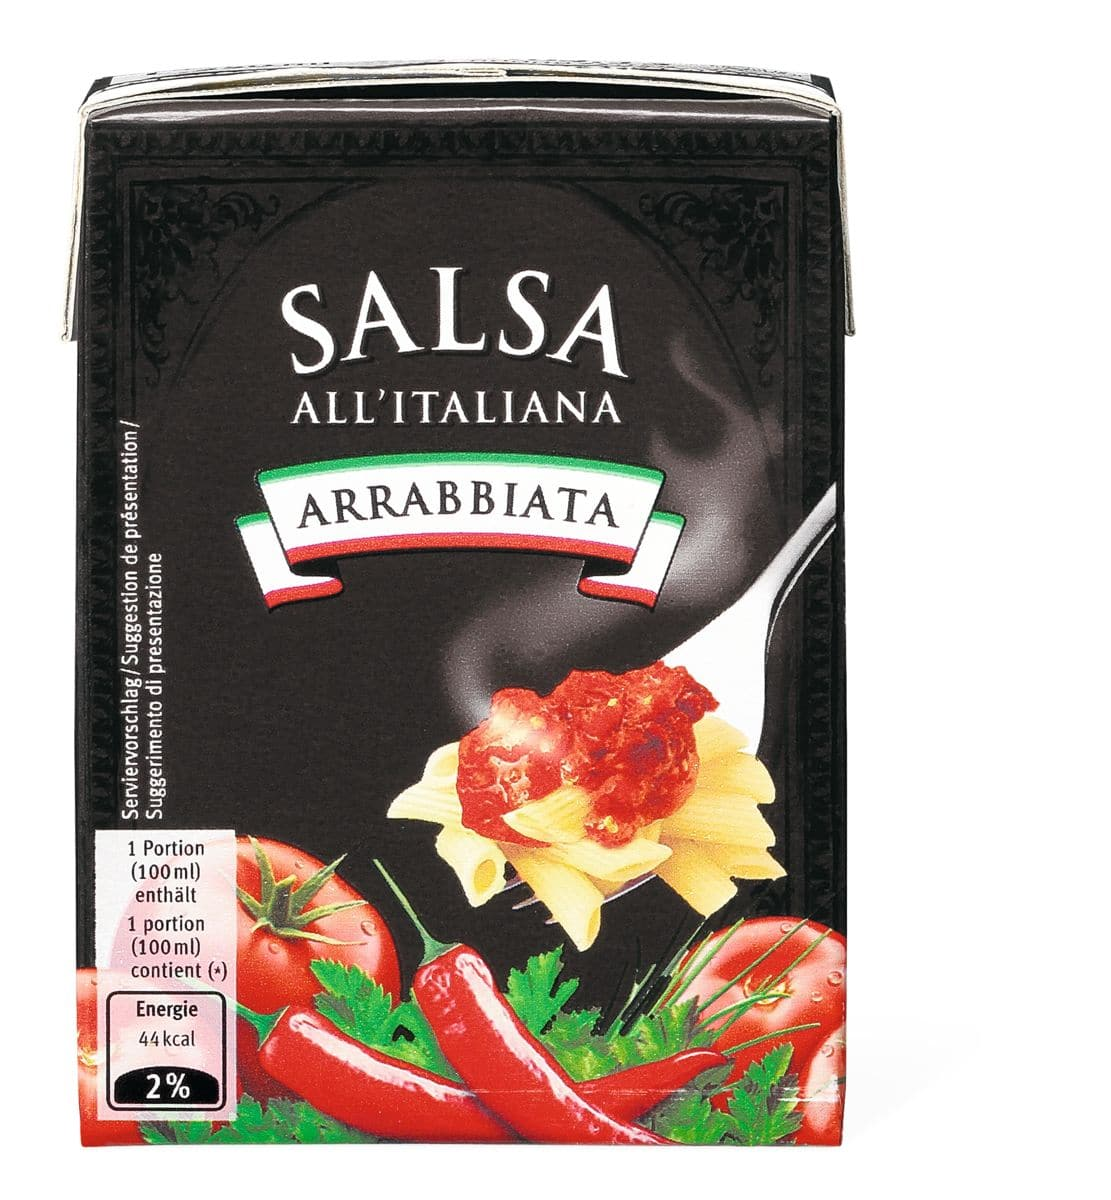 Salsa all'Italiana Arrabbiata